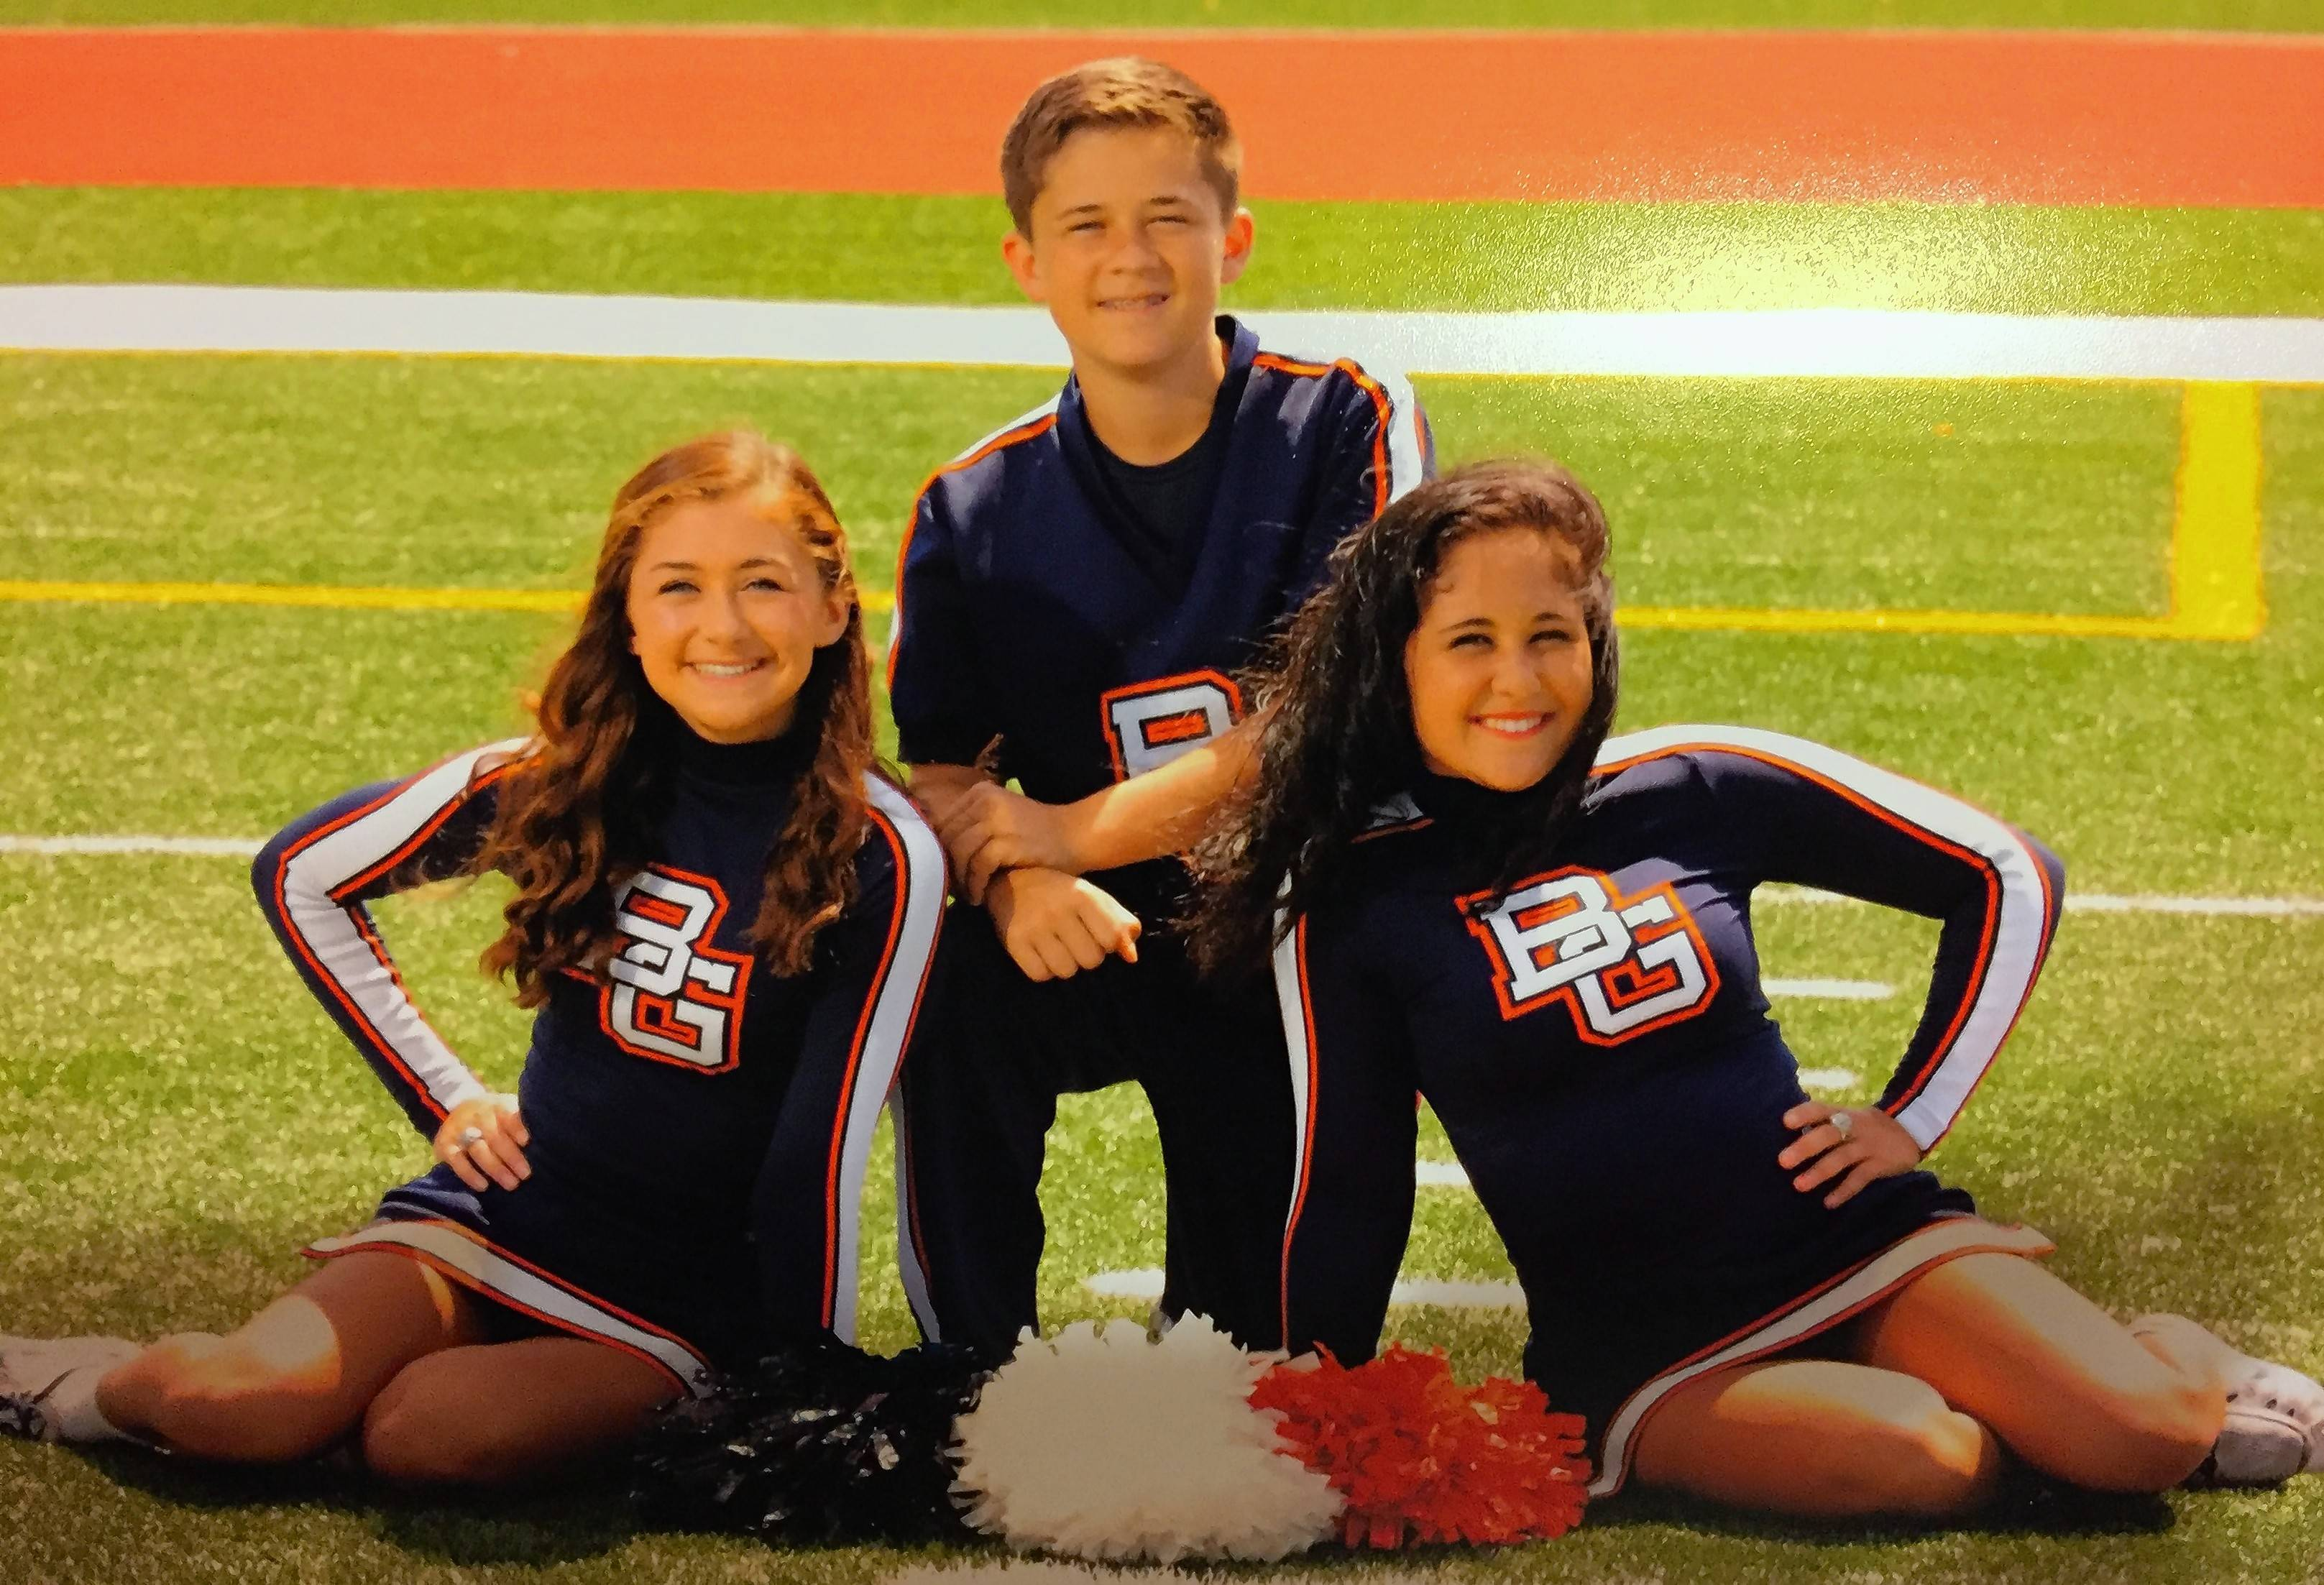 Buffalo Grove High School's cheerleading squad, hoping for a three-peat at this weekend's IHSA state championships, already has one threesome: siblings junior Kennedy McEwen, right, freshman Bobby McEwen and senior Karson McEwen.